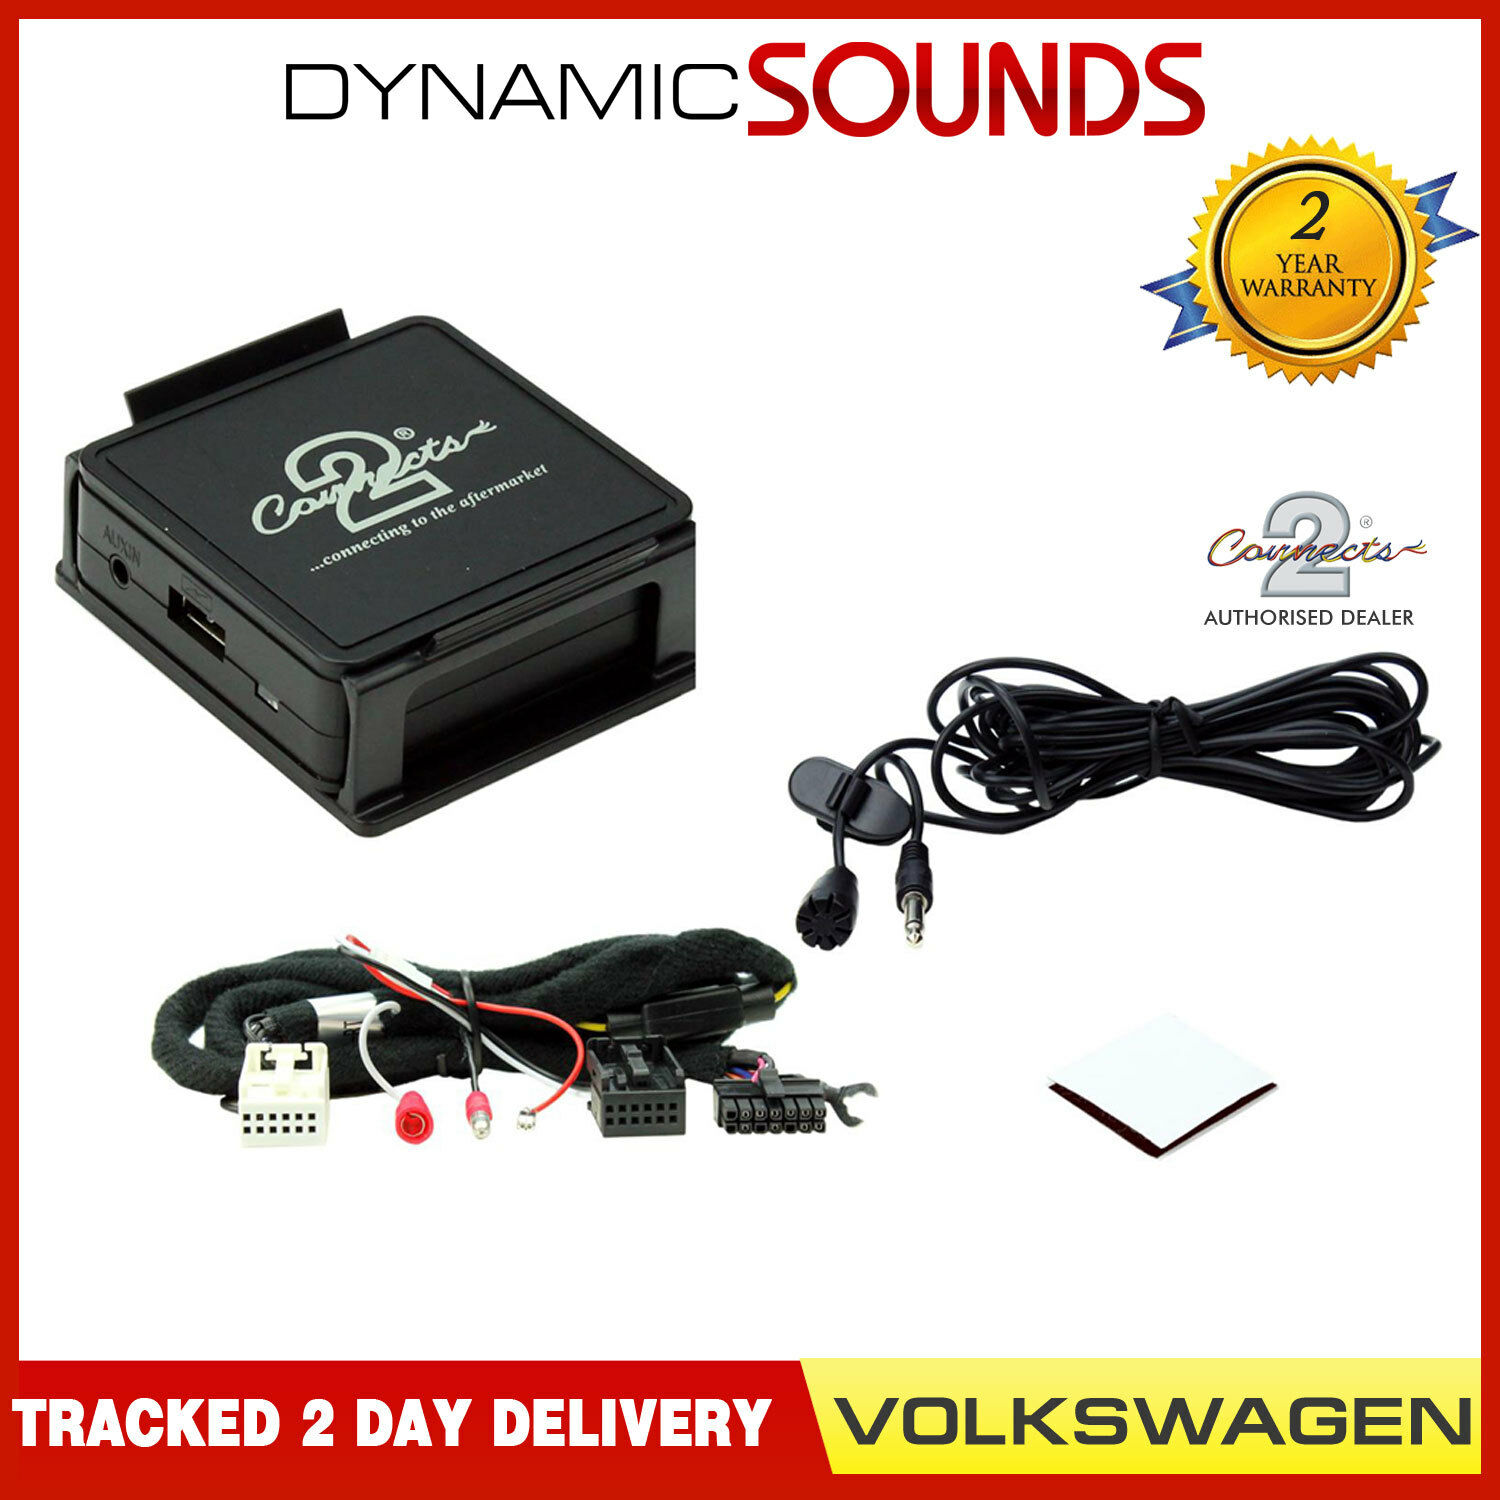 Aux 3.5mm Adaptor VW Touareg 2005 on Connects2 CTAVGUSB009 USB